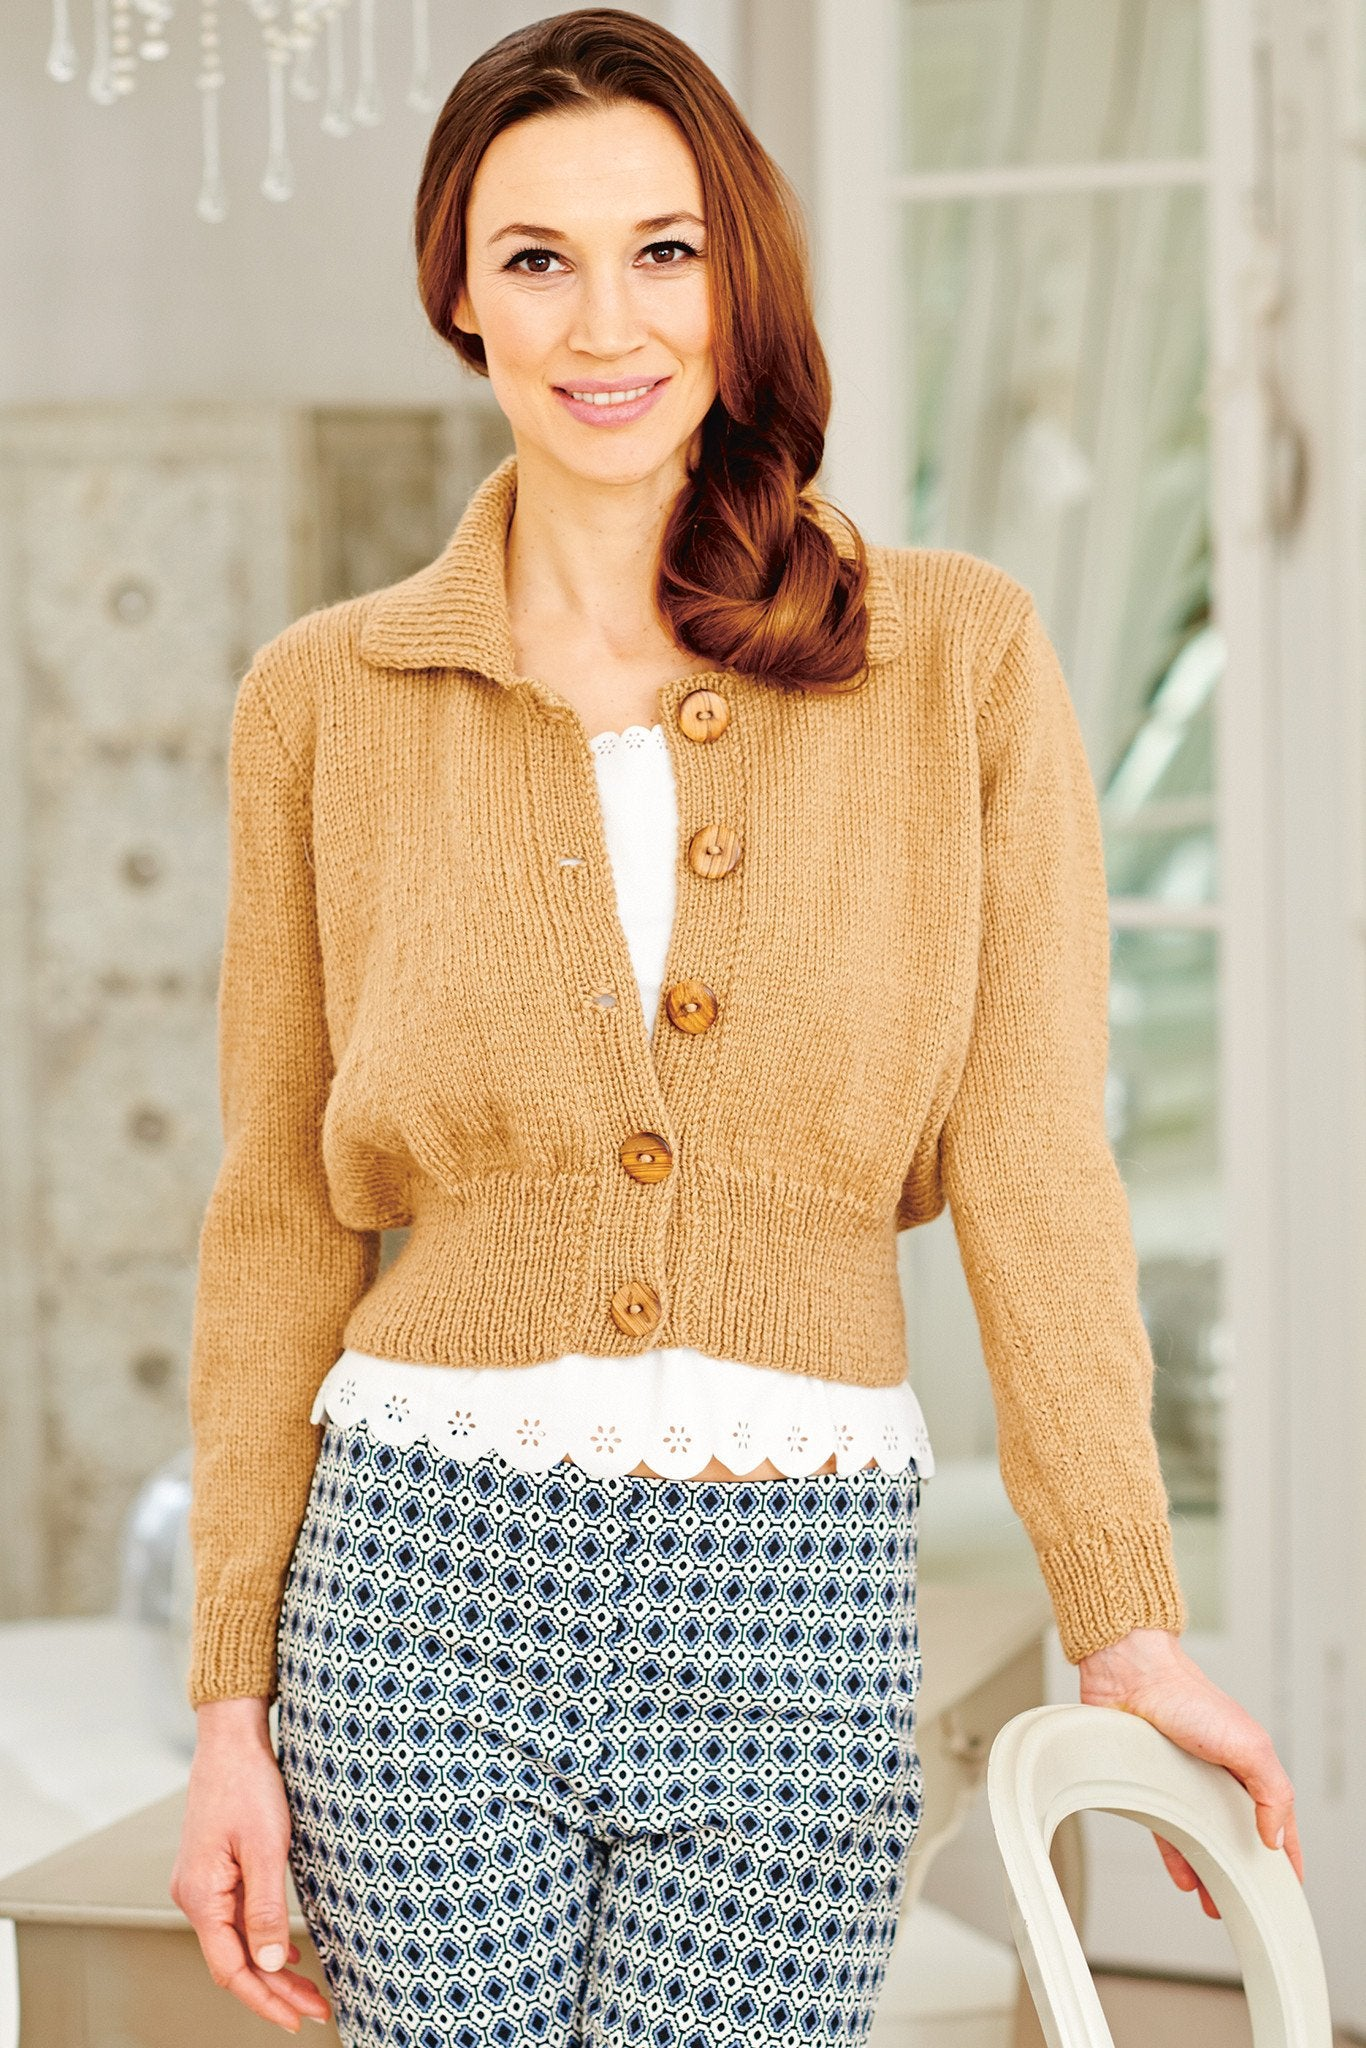 Vintage Ladies Cardigan With Collar Knitting Pattern – The Knitting ...